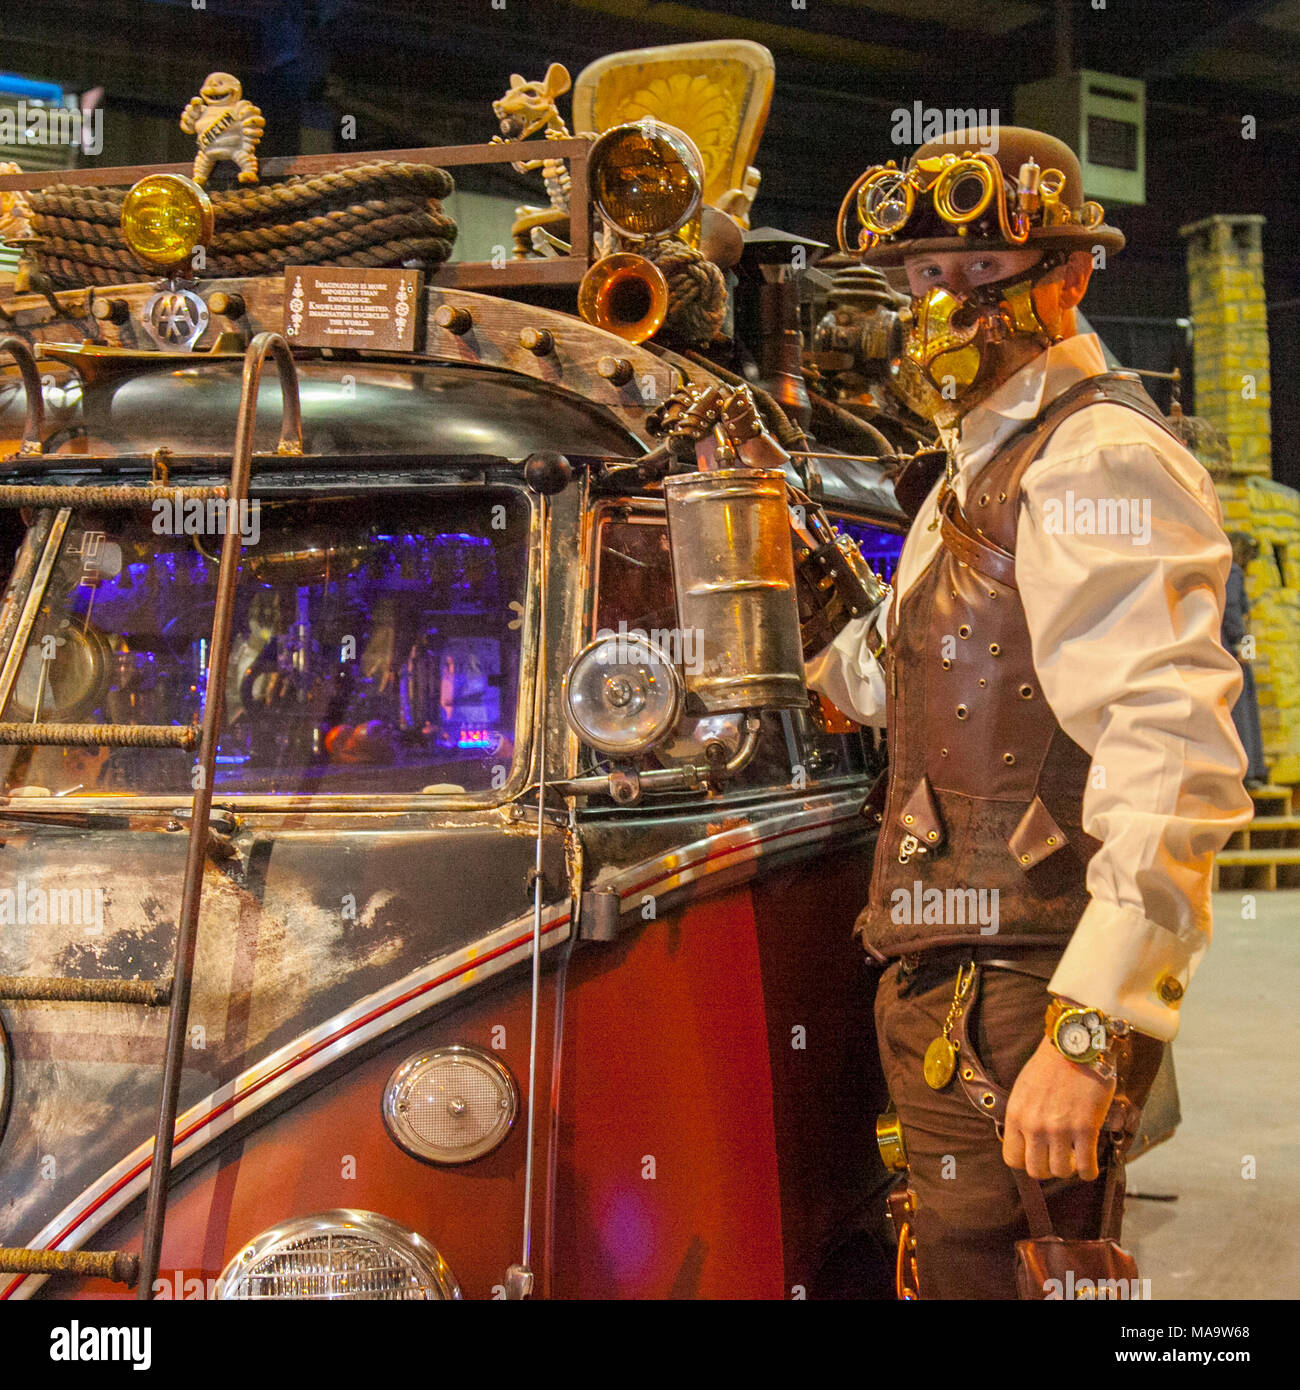 Manchester, UK 31th March 2018.  Steve at the Post apocalyptic Weekend at the Asylum, the Planet's largest steampunk festival where a City becomes Wasteland Costumes Capital for four days. The Victorian Steampunk Society, teamed up with Manchester's Bowlers Exhibition Centre and the organisers of For the Love of Sci Fi to create a Cosplay Expo. Credit: MediaWorldImages/AlamyLiveNews - Stock Image